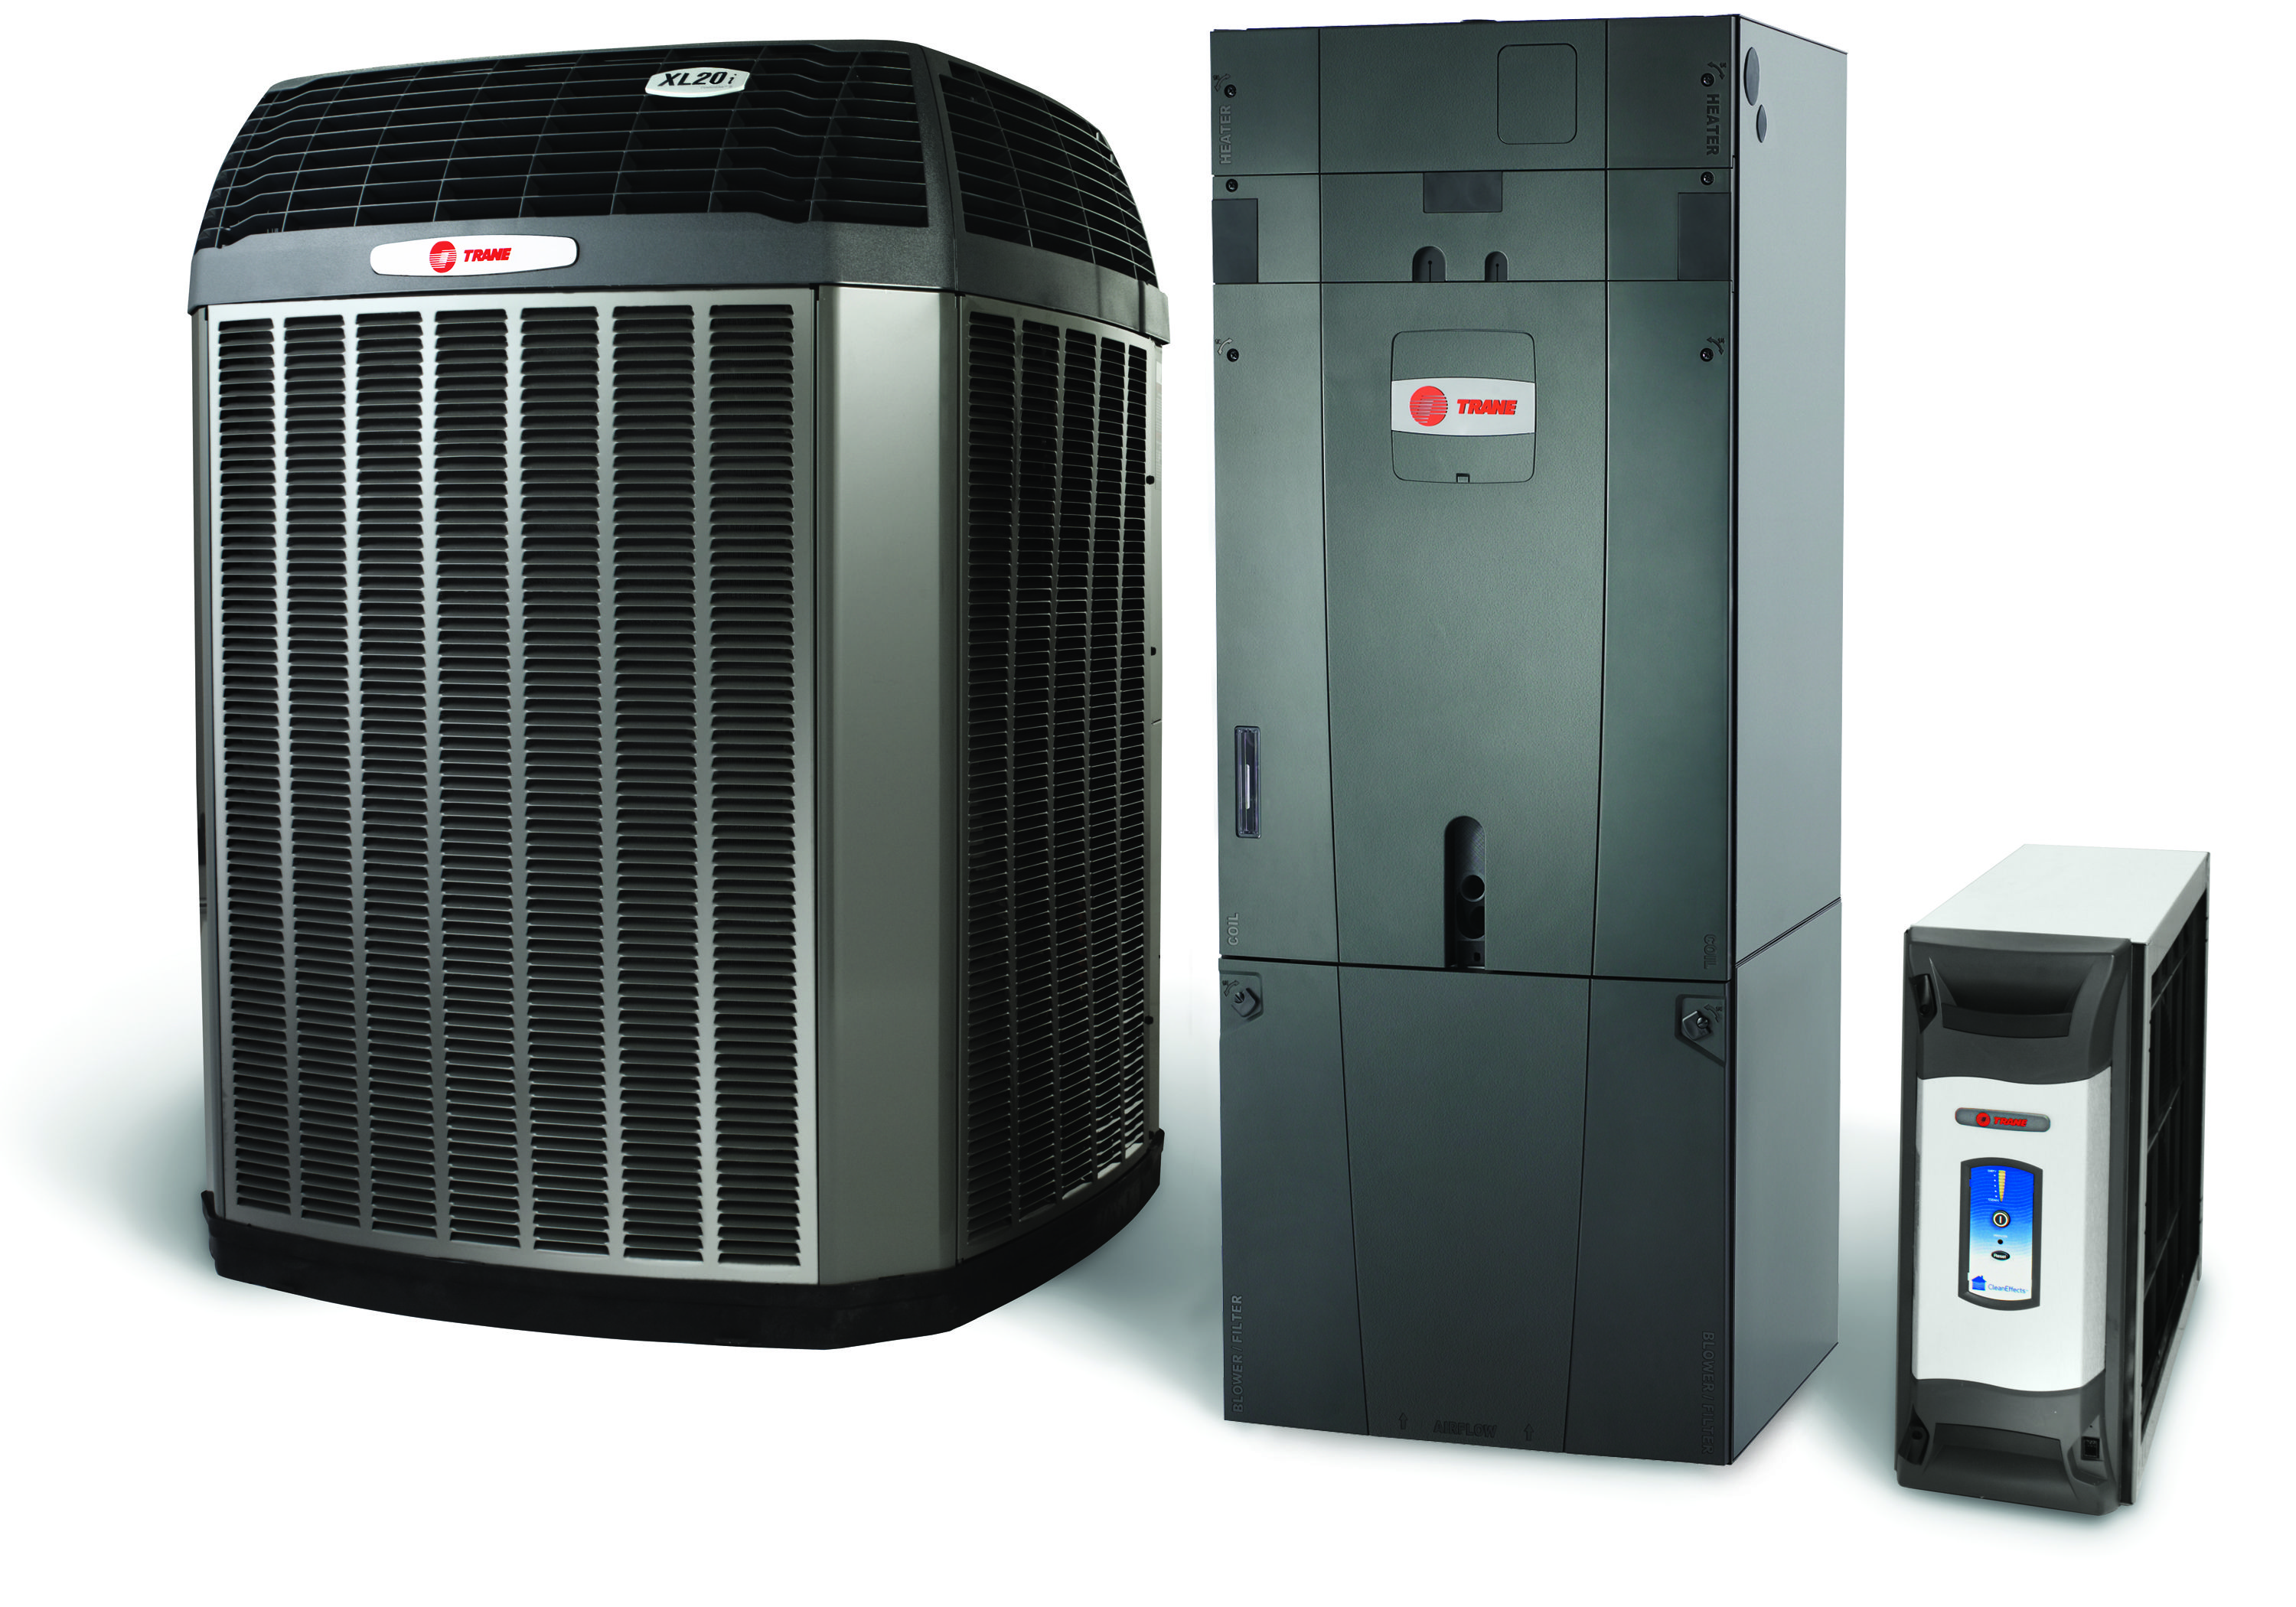 Trane Furnace Heat Pump Air Cleaner And More Heat Pump Heating Furnace Heating And Air Conditioning